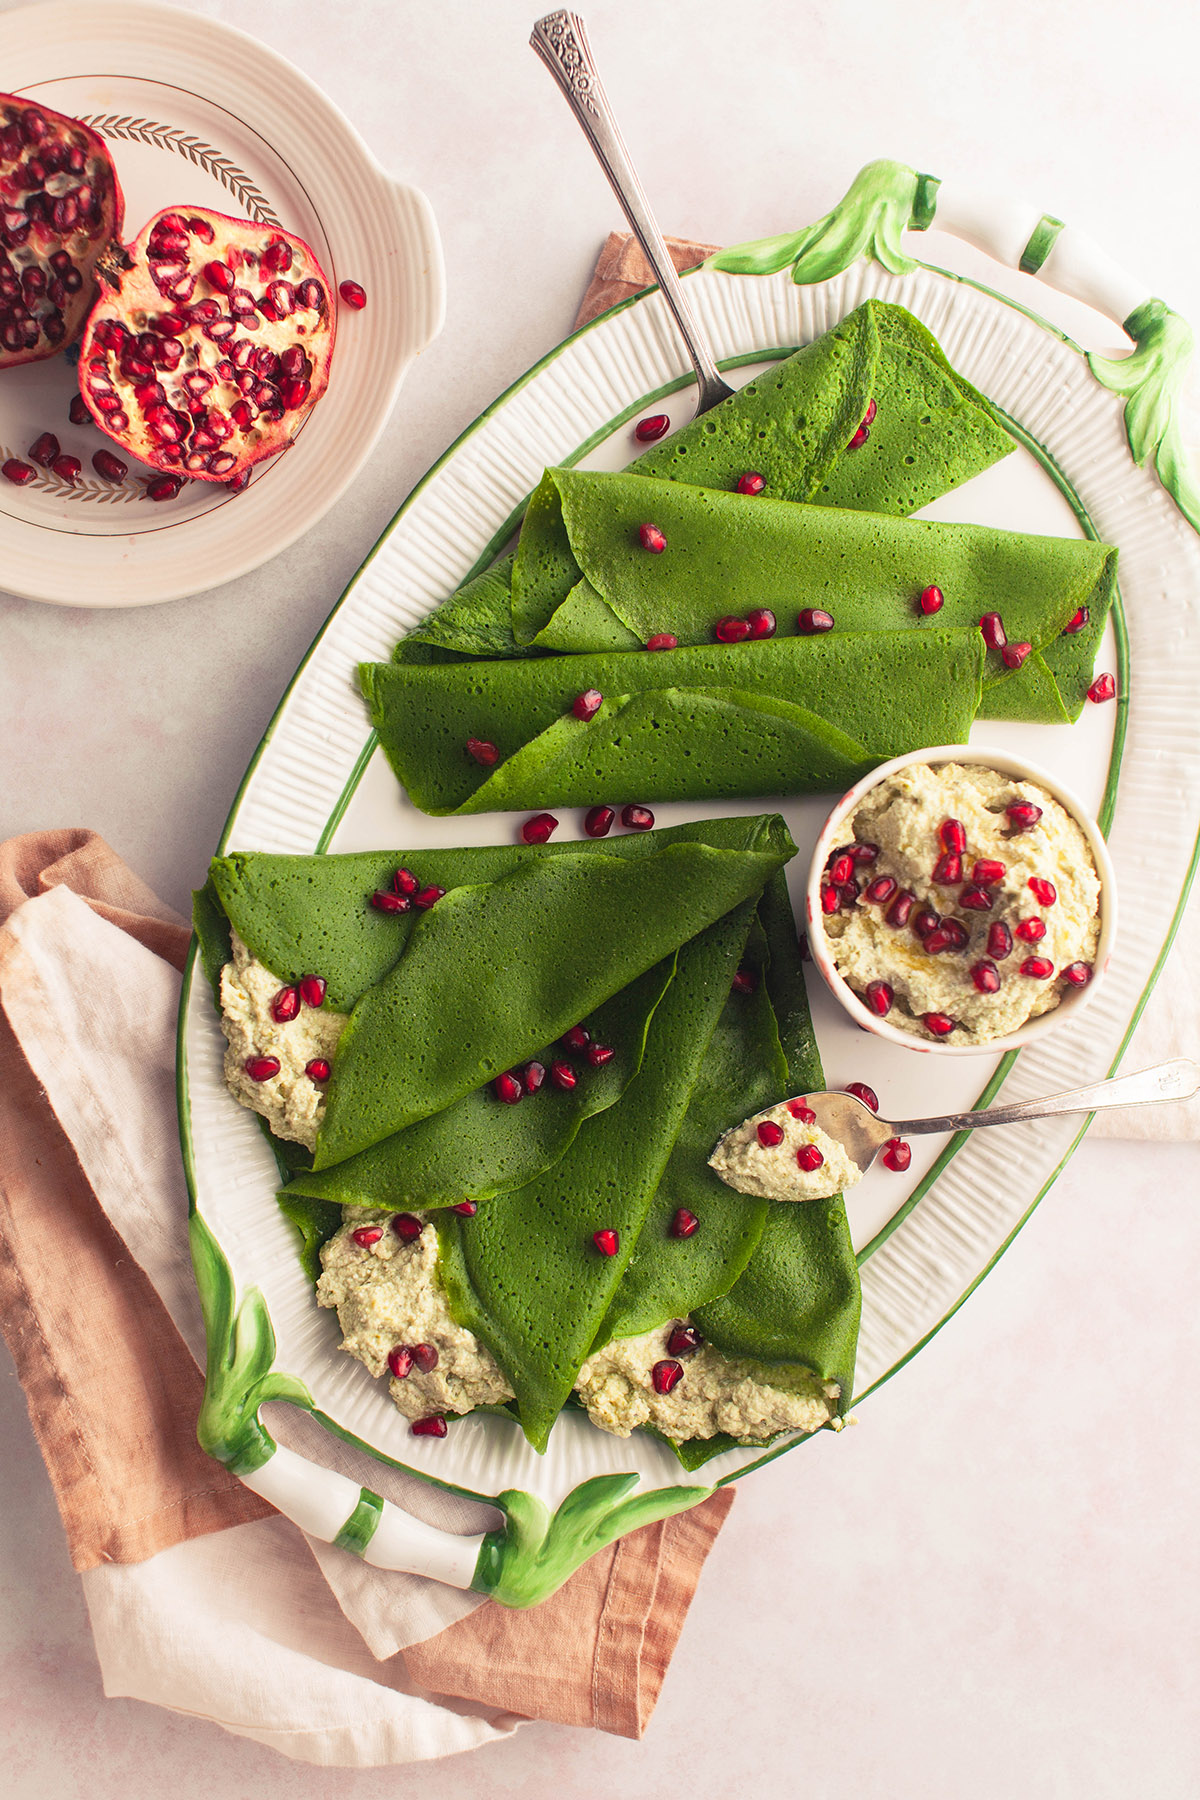 Pesto and Ricotta Filled Spinach Crepes with Pomegranate